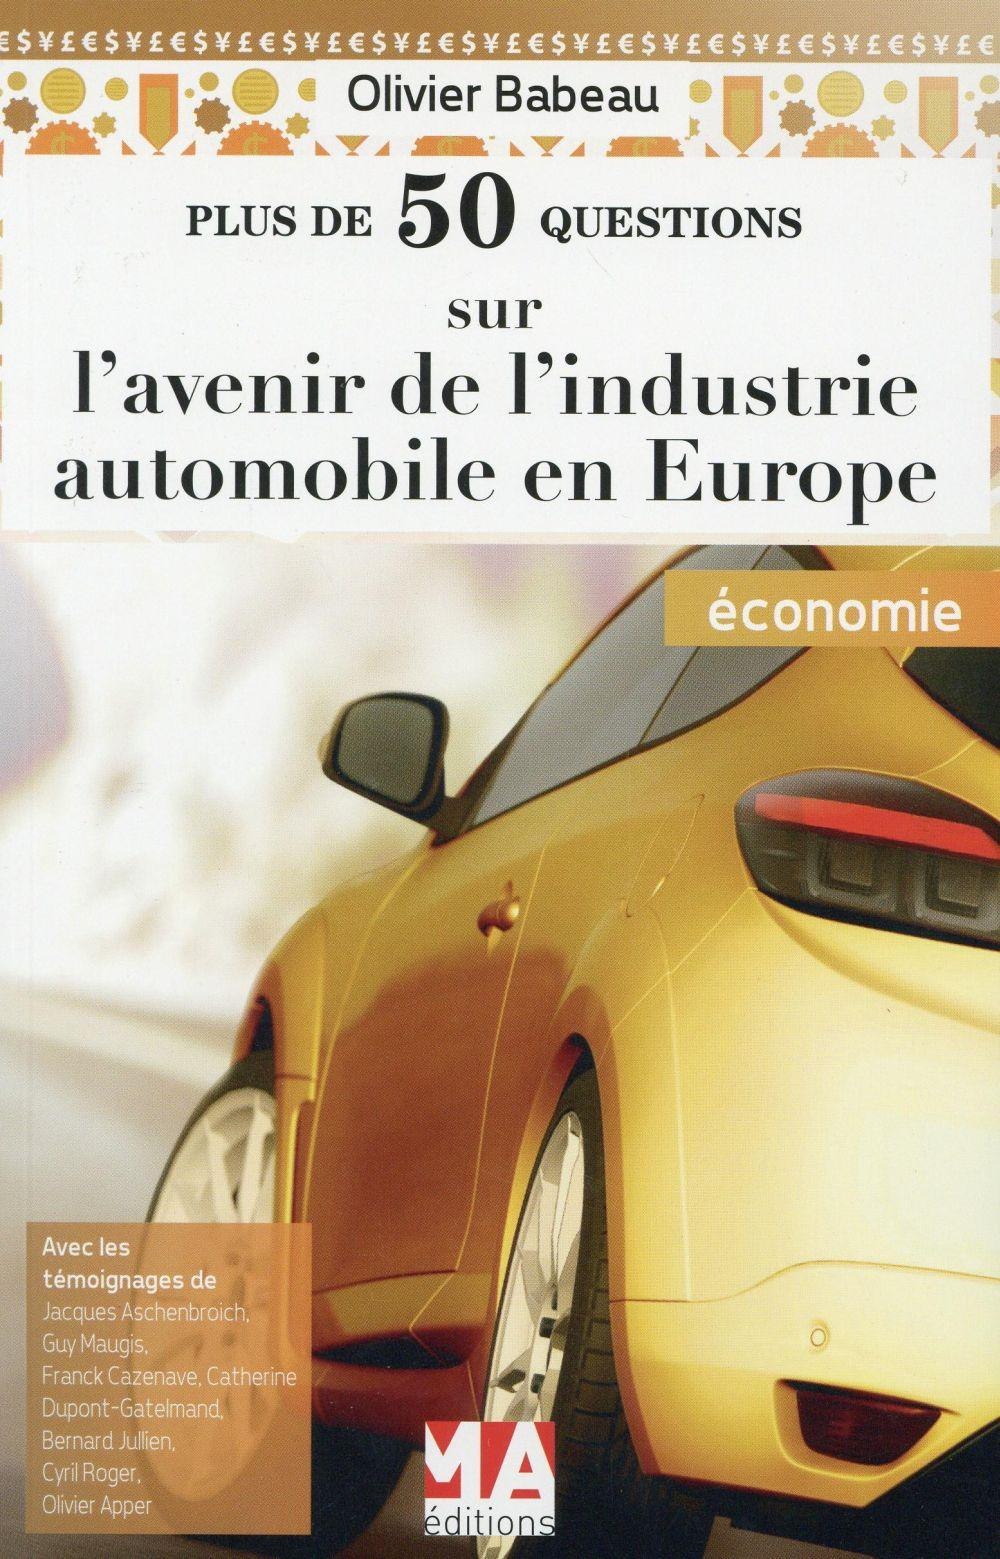 Plus de 50 questions sur l'avenir de l'industrie automobile en Europe  - Collectif  - Olivier Babeau